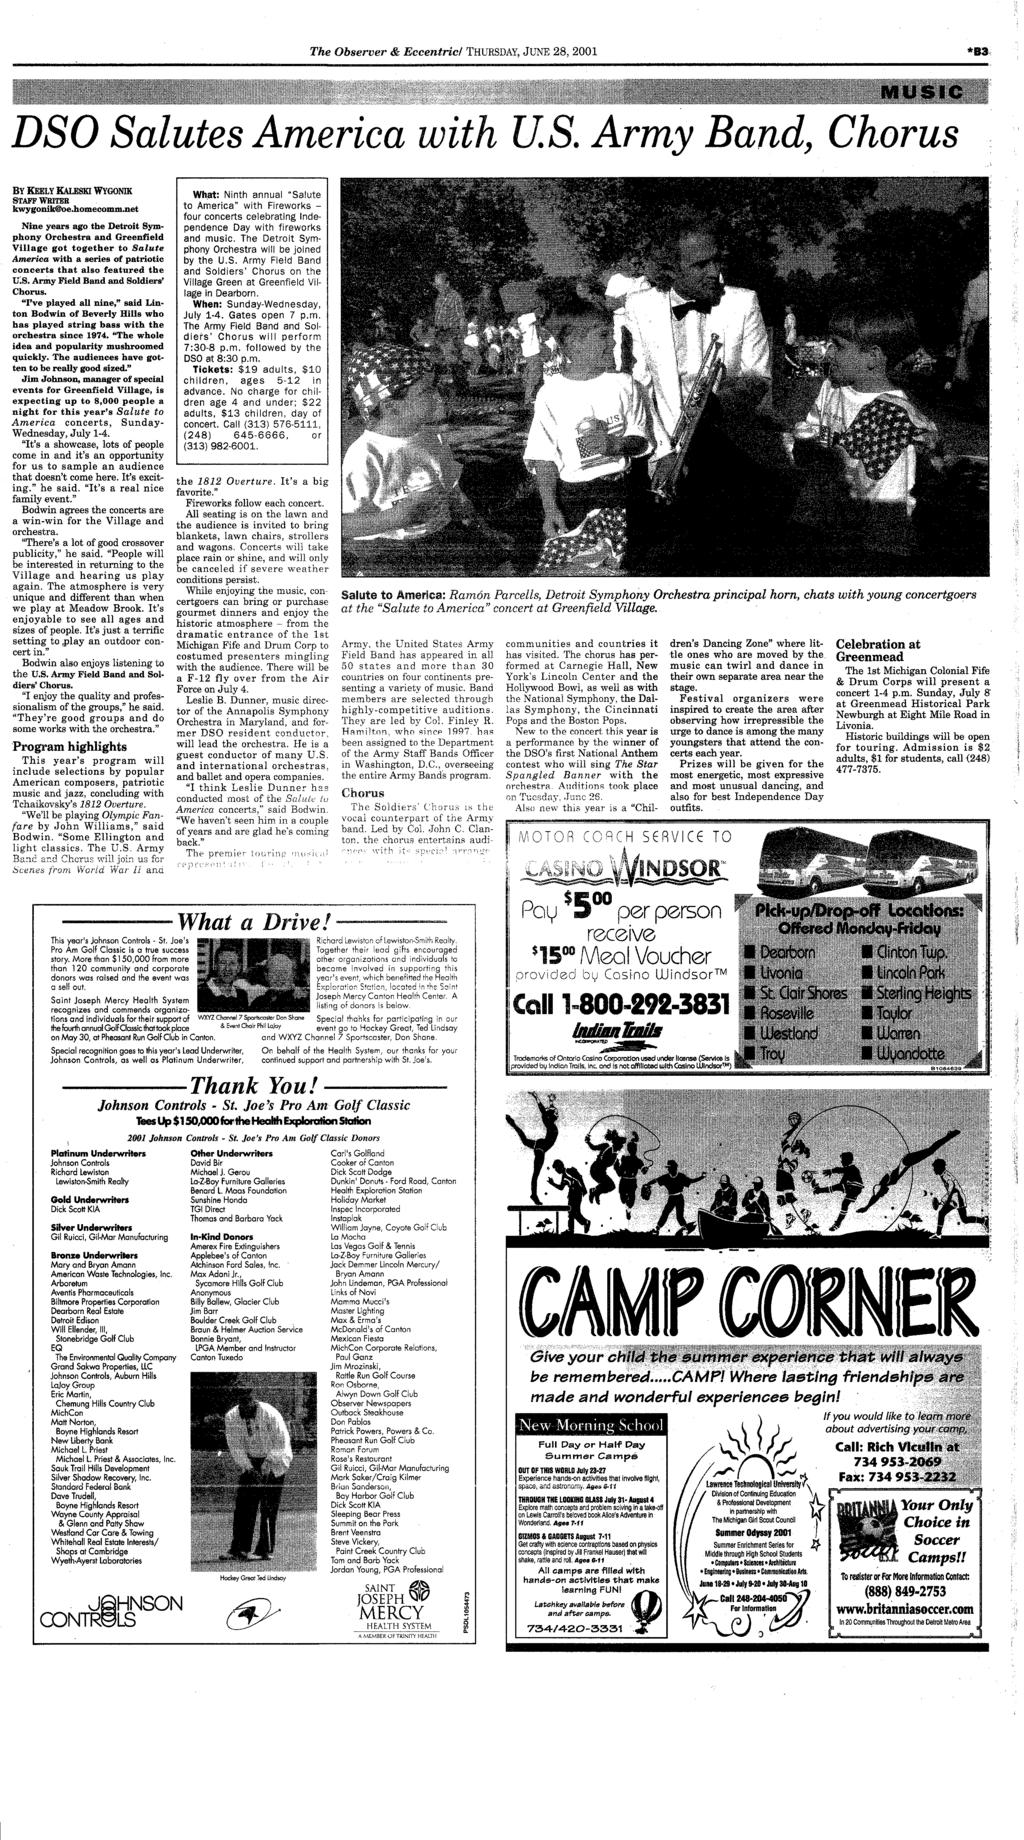 Canton dbsmrc your hometown newspaper serving canton for 26 years pdf the observer eccentric thursday june 28 2001 b3 music dso salutes fandeluxe Gallery